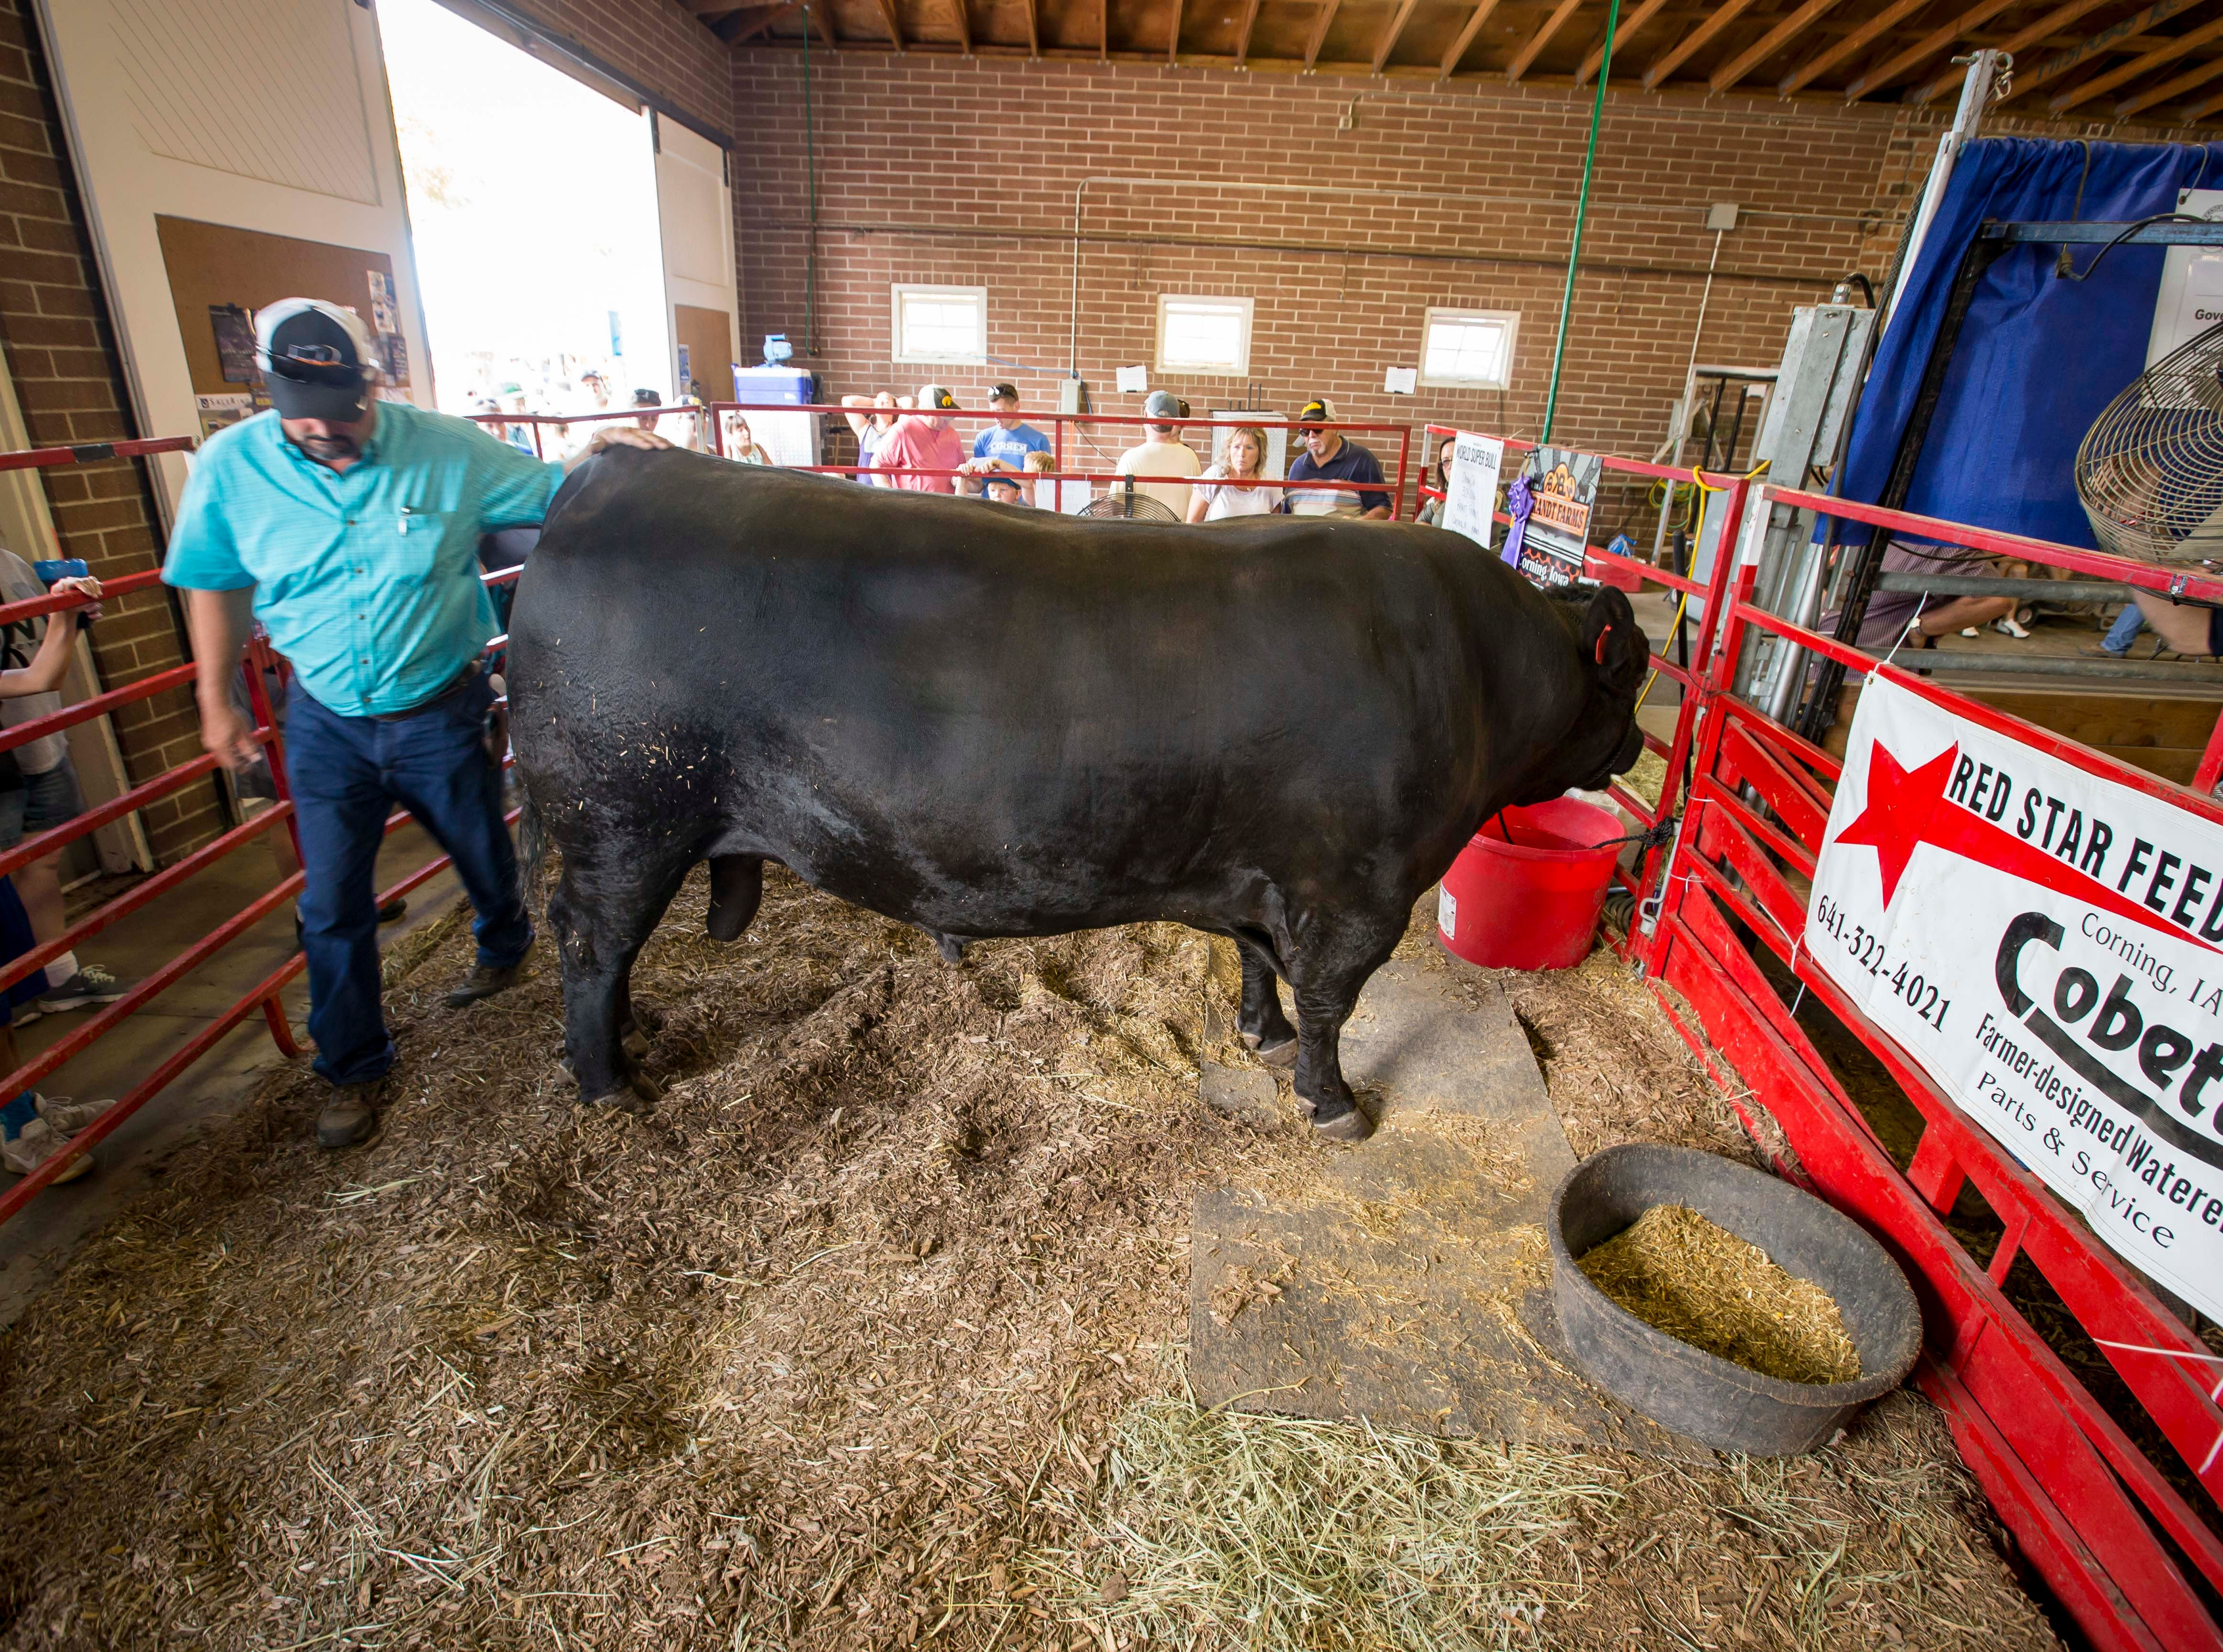 Dream On, the 3,050 pound Simmi/Angus bull owned by Brandt Farms of Corning, outweighed the competition to win the Super Bull contest judged Thursday at the 2018 Iowa State Fair shown here during the Iowa State Fair Friday, Aug. 10, 2018, in Des Moines, Iowa.